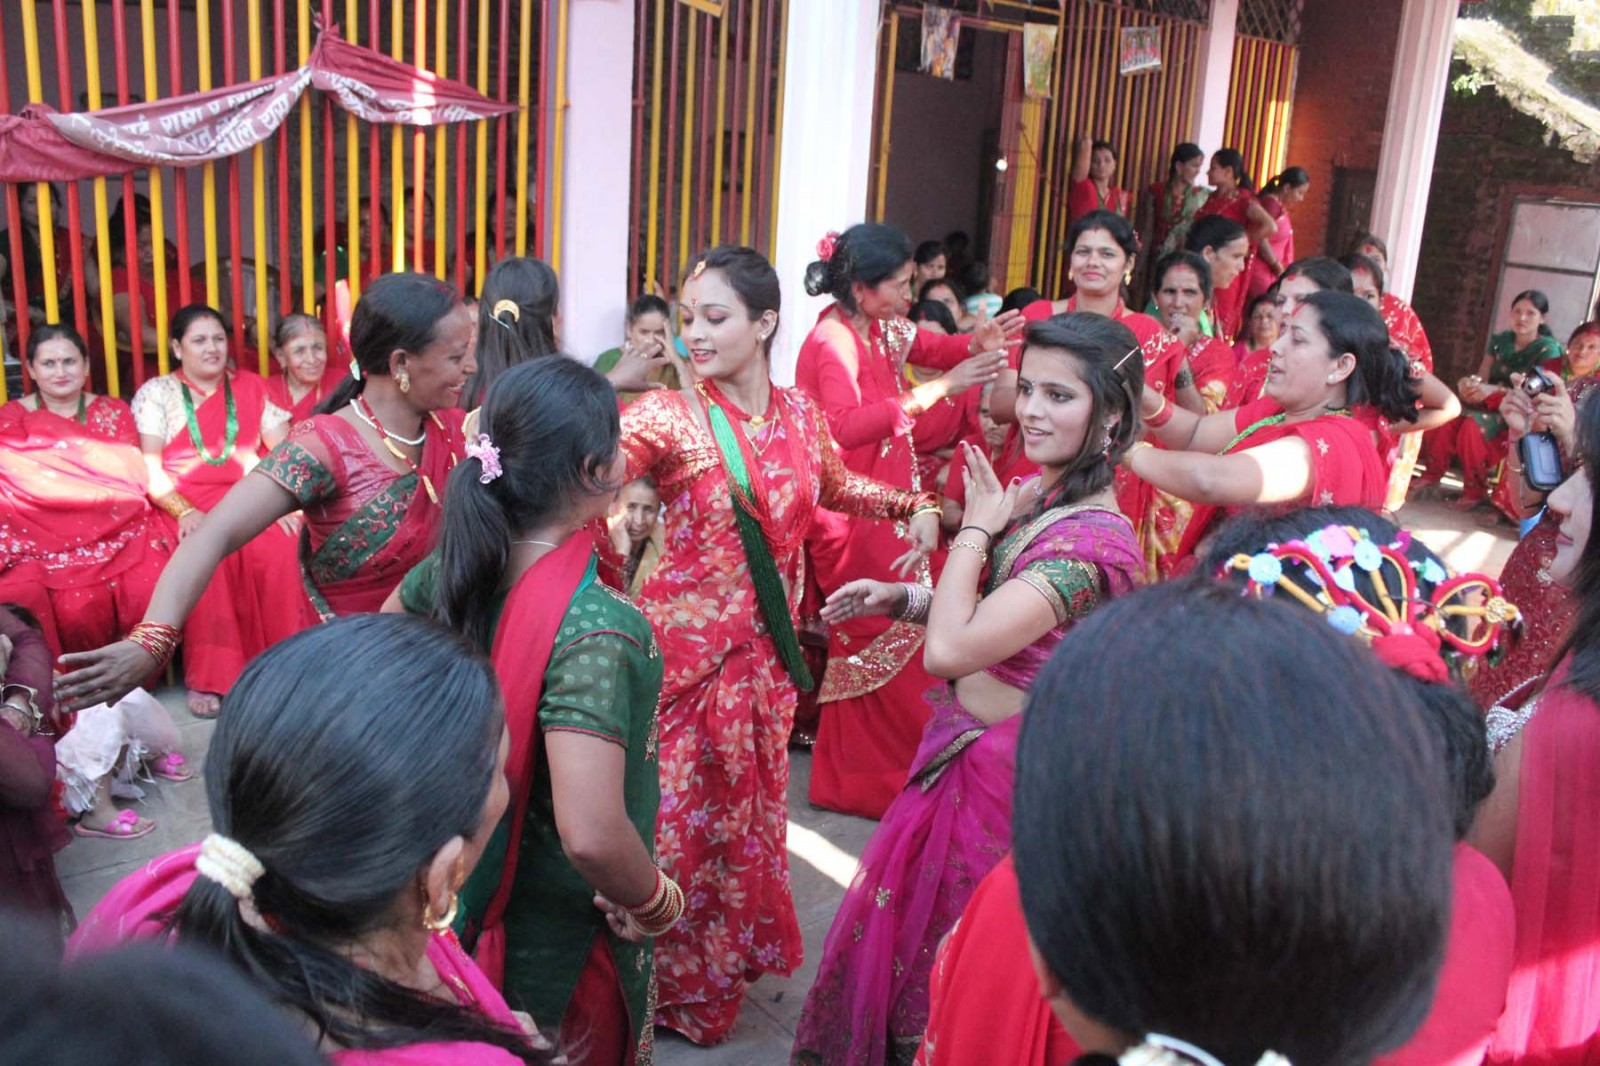 Inexpensive-Countries-to-Live-nepal-Ladies-Dancing-In-A-Temple-In-Lalitpur-On-The-Occasion-Of-Teej